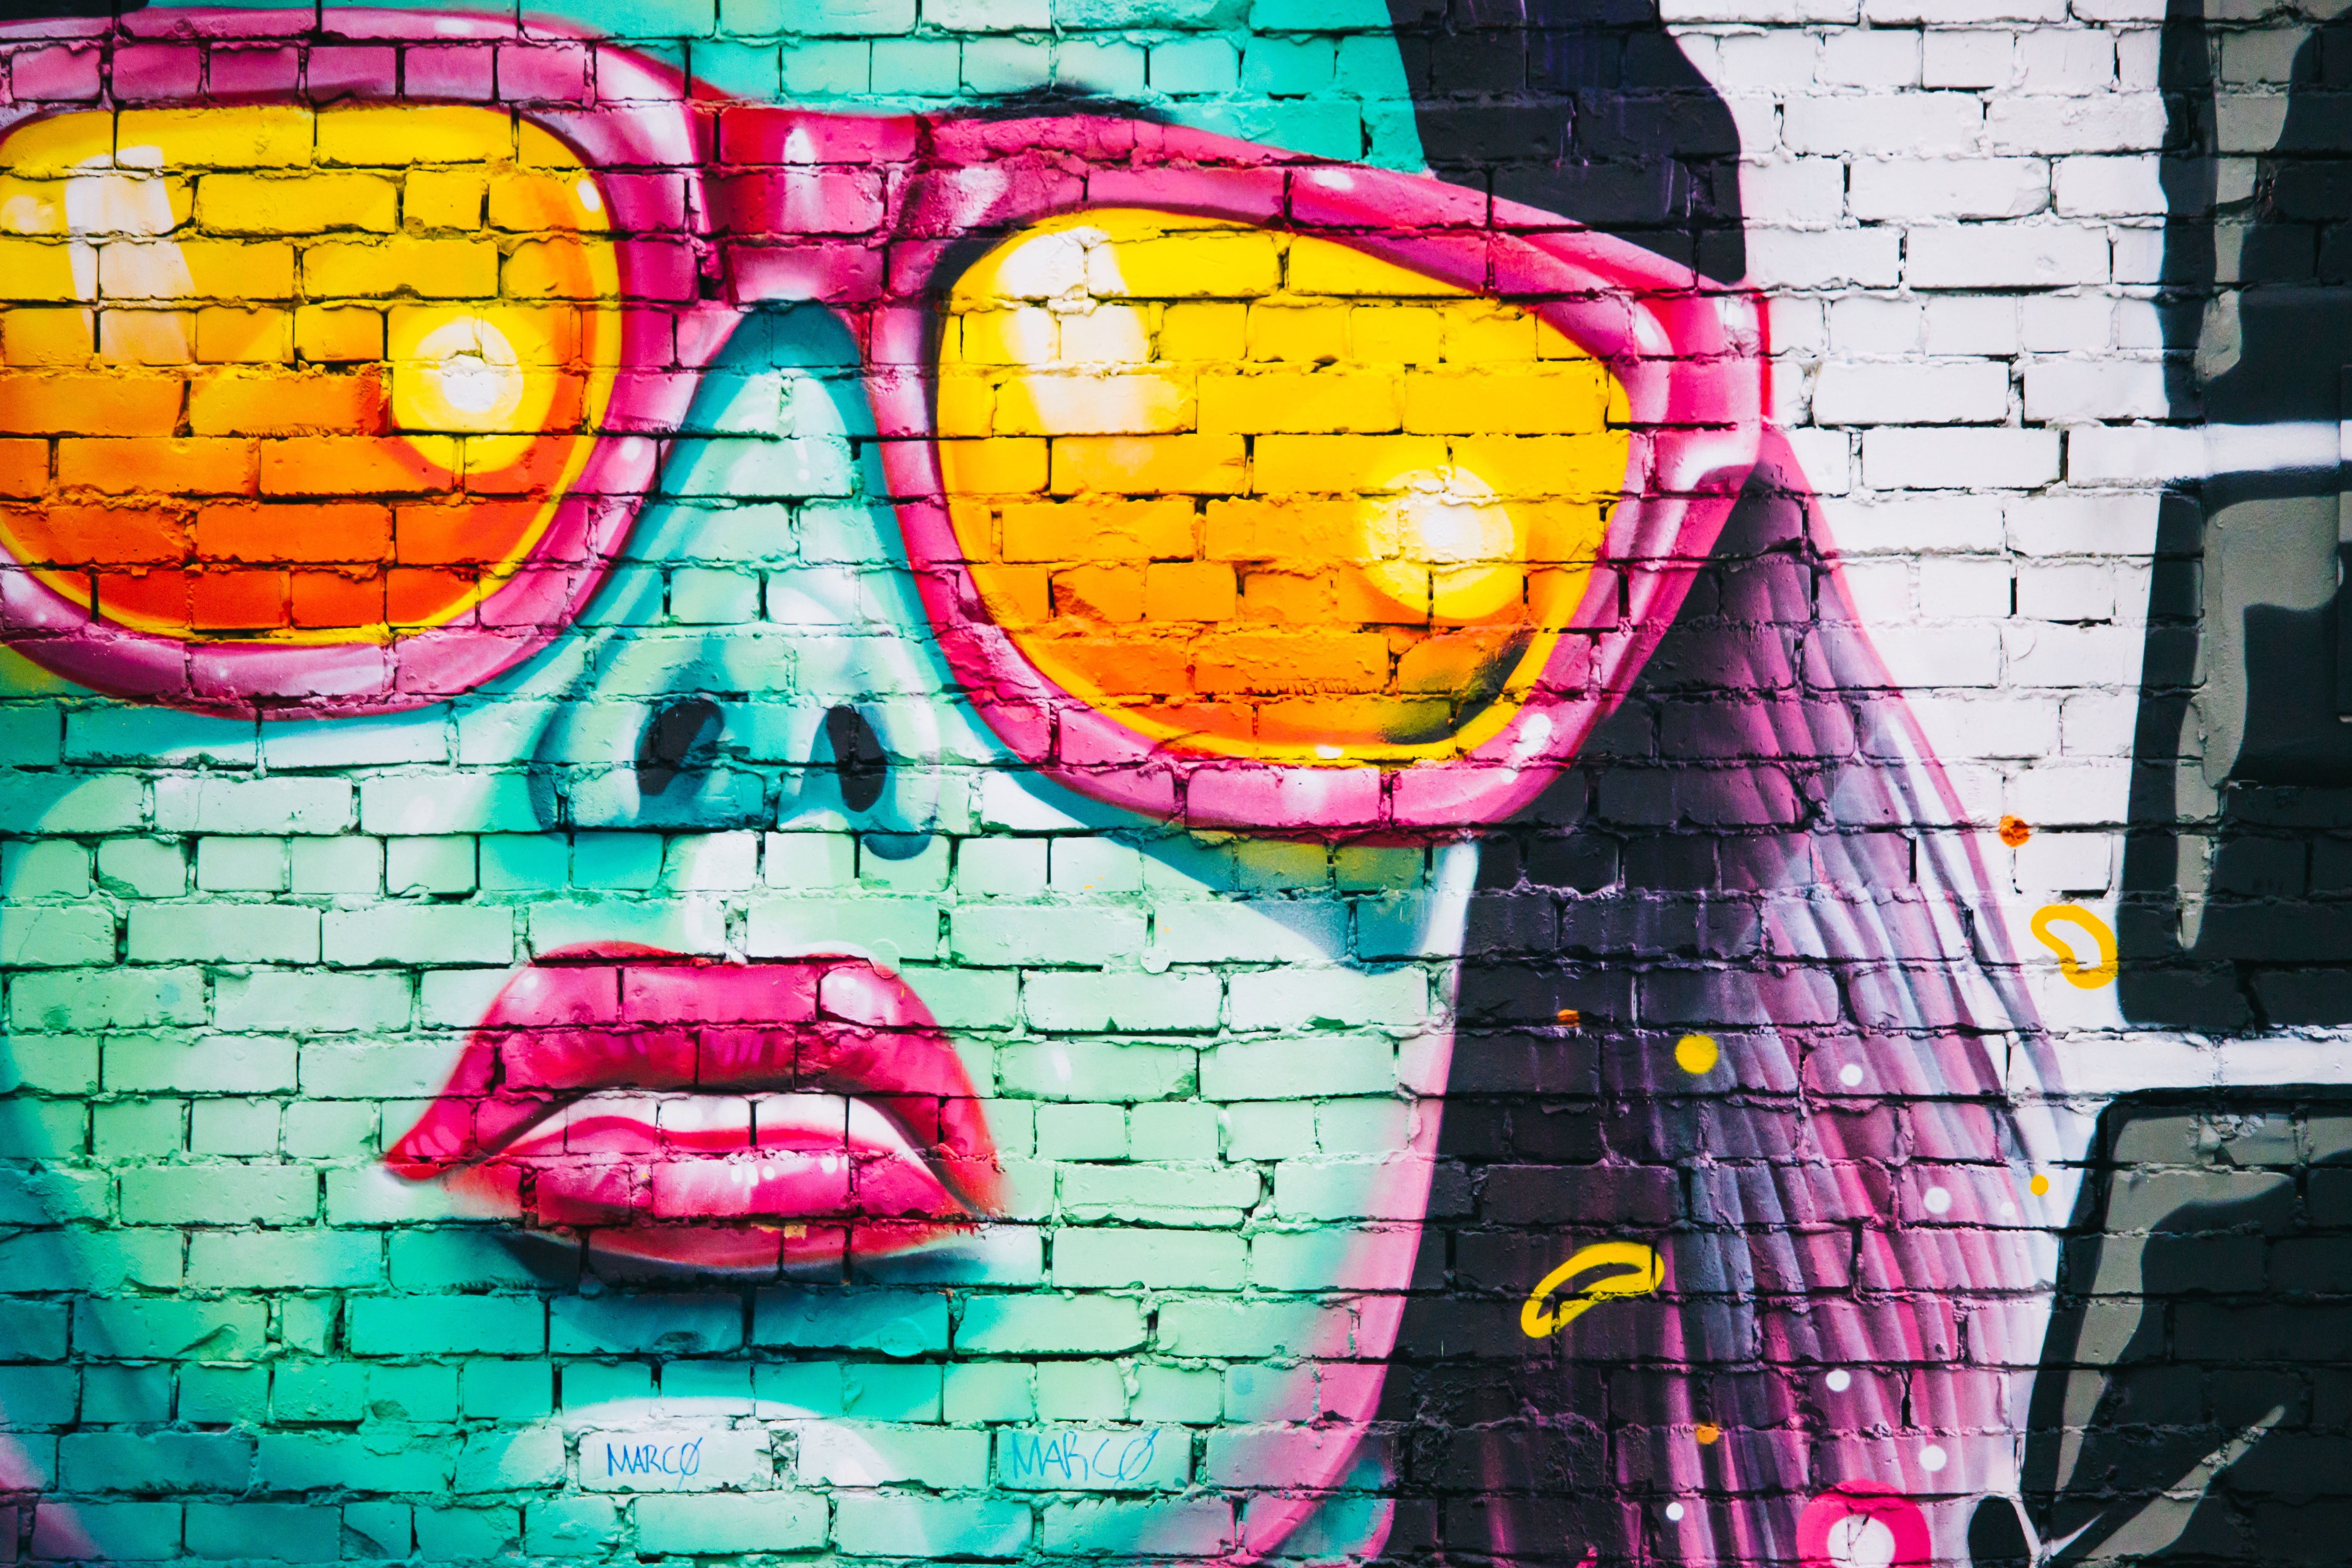 Neon mural of woman wearing sunglasses and pink lipstick on brick wall in England